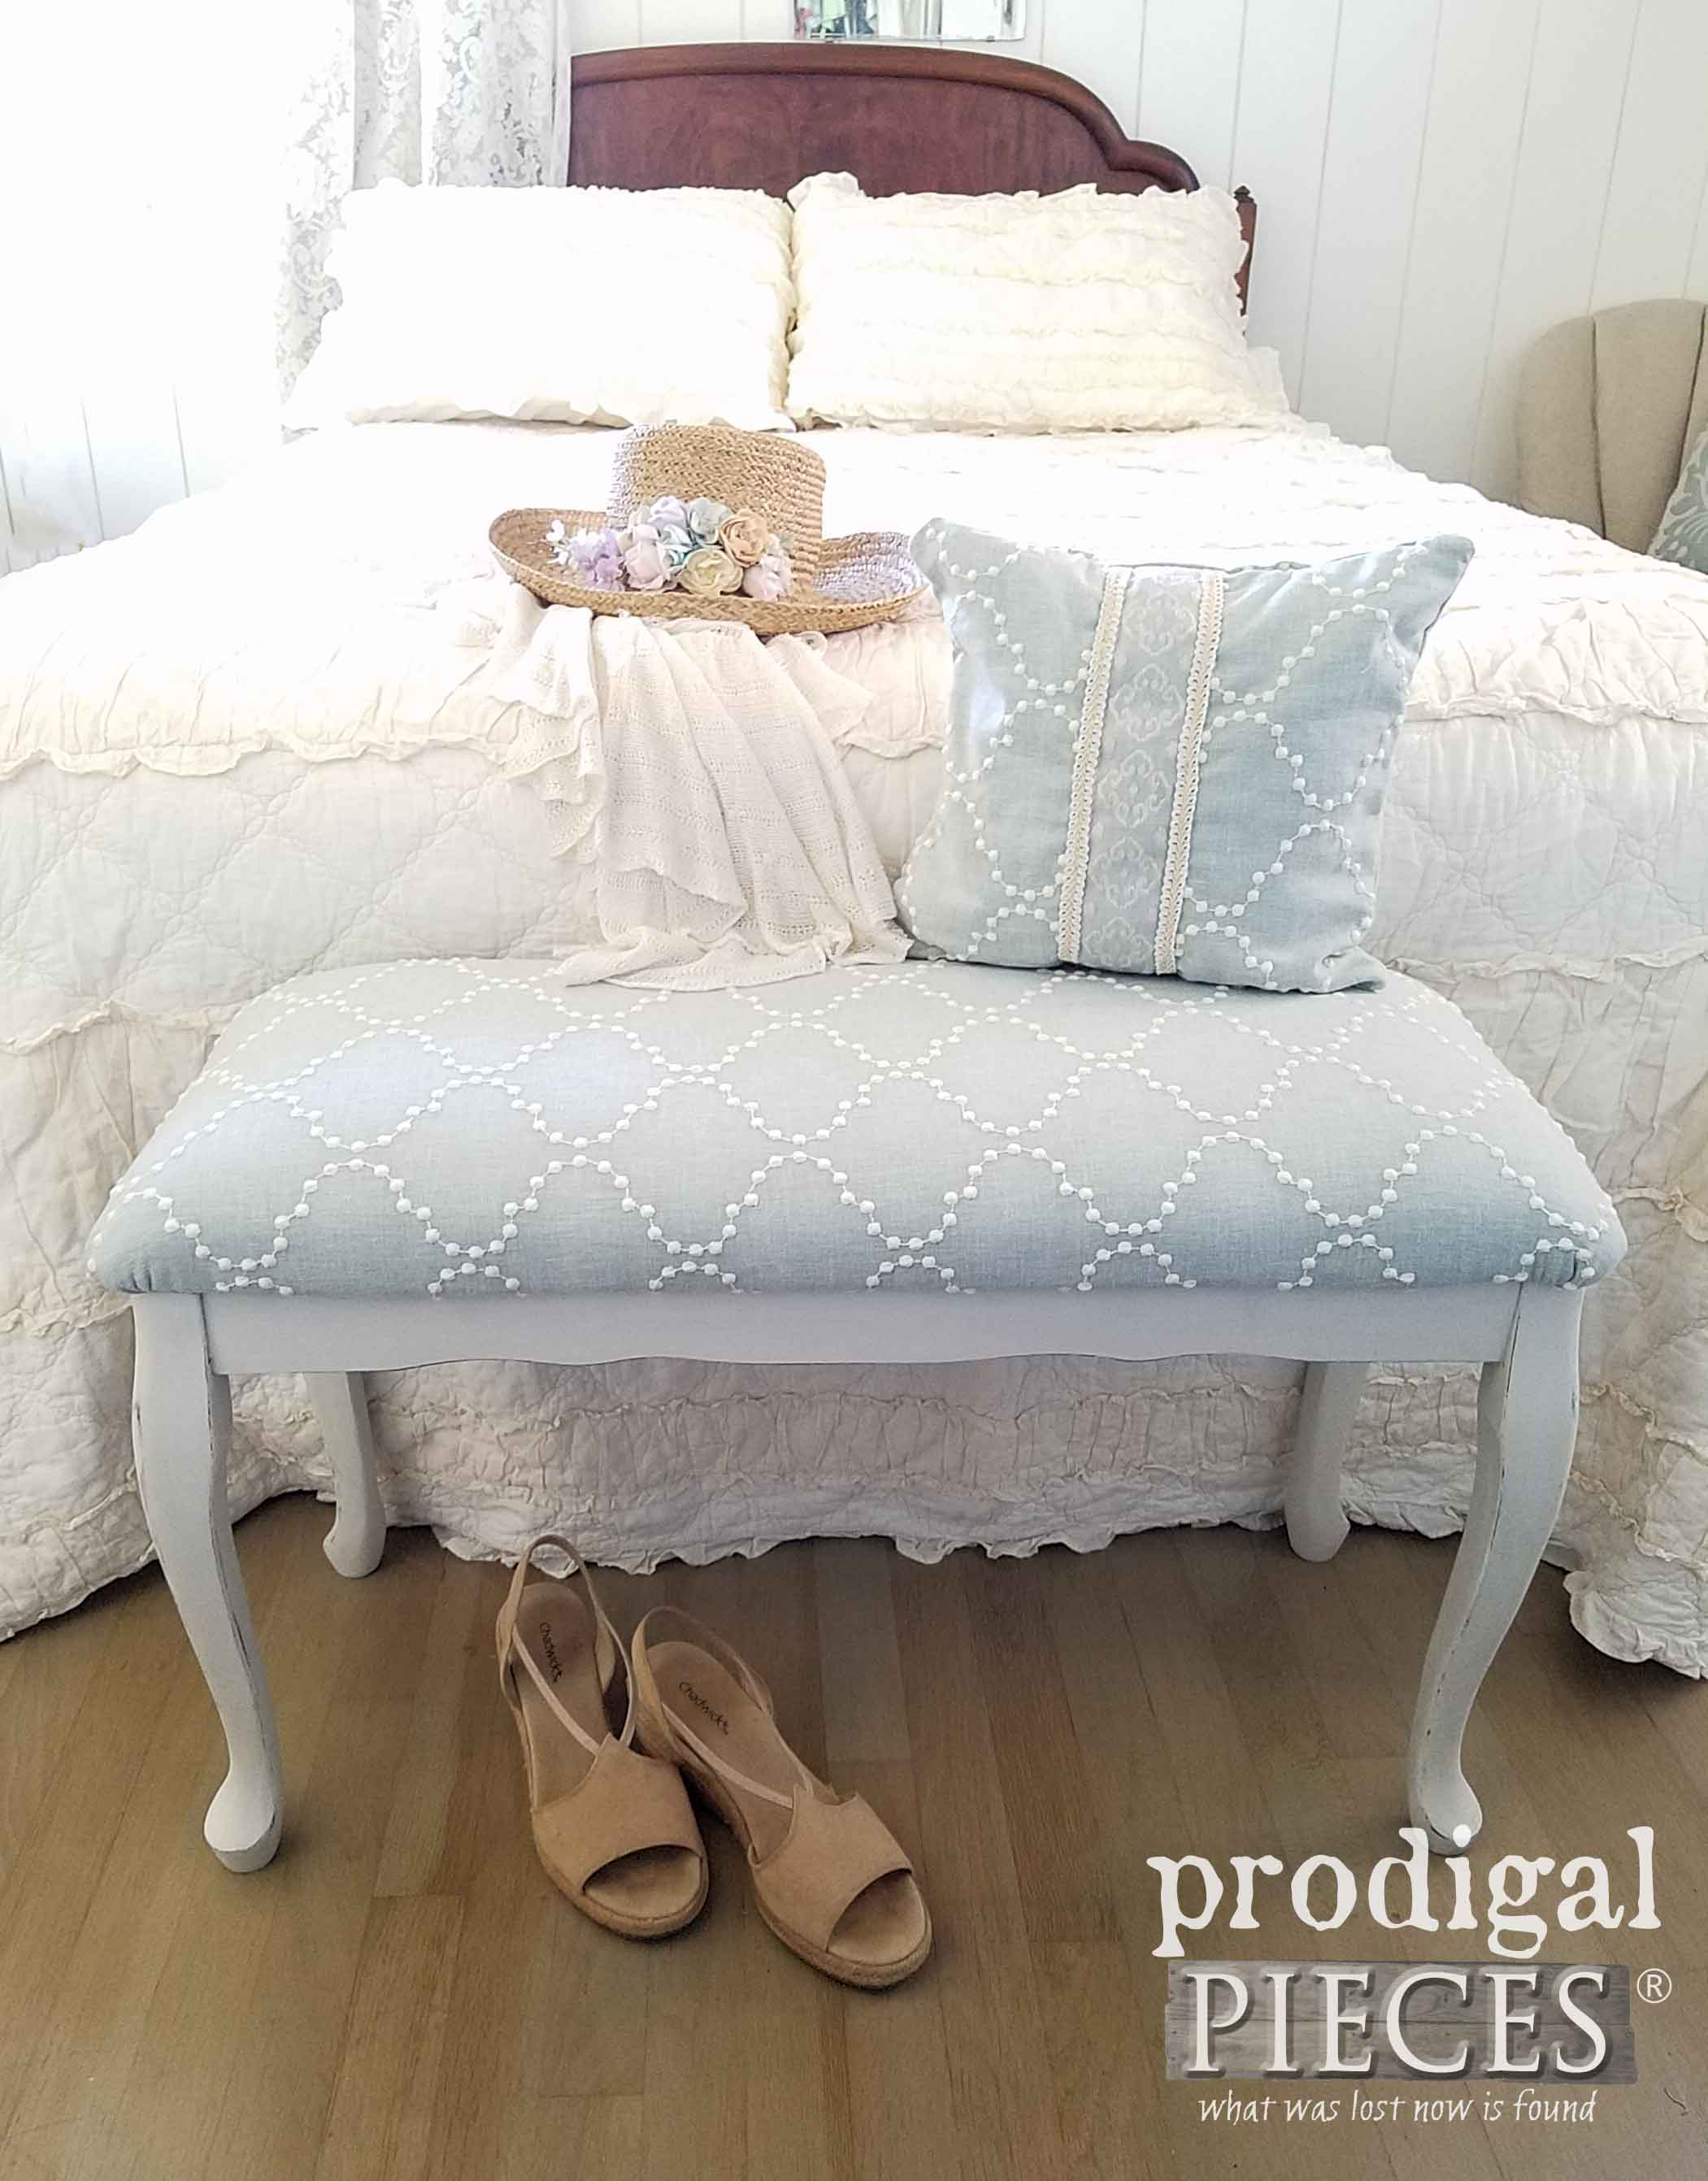 Vintage Upholstered Bench gets updated look by Larissa of Prodigal Pieces | prodigalpieces.com